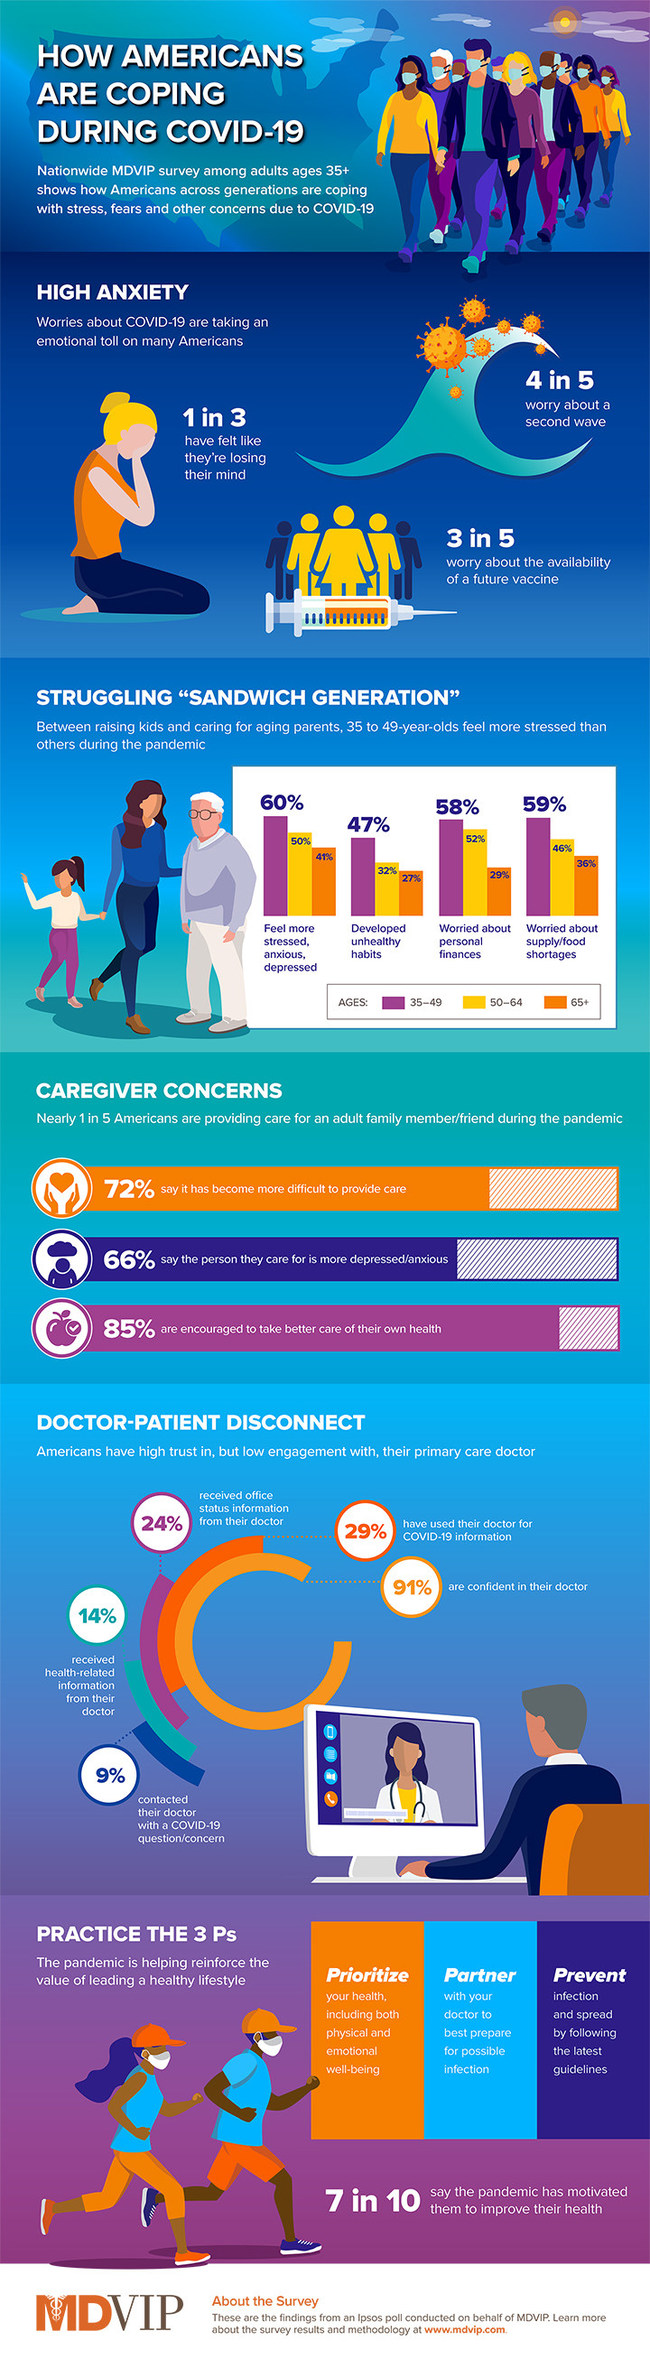 Infographic: Nationwide survey from MDVIP shows how American adults across the generations are coping with stress, fears and other concerns due to the COVID-19 pandemic.